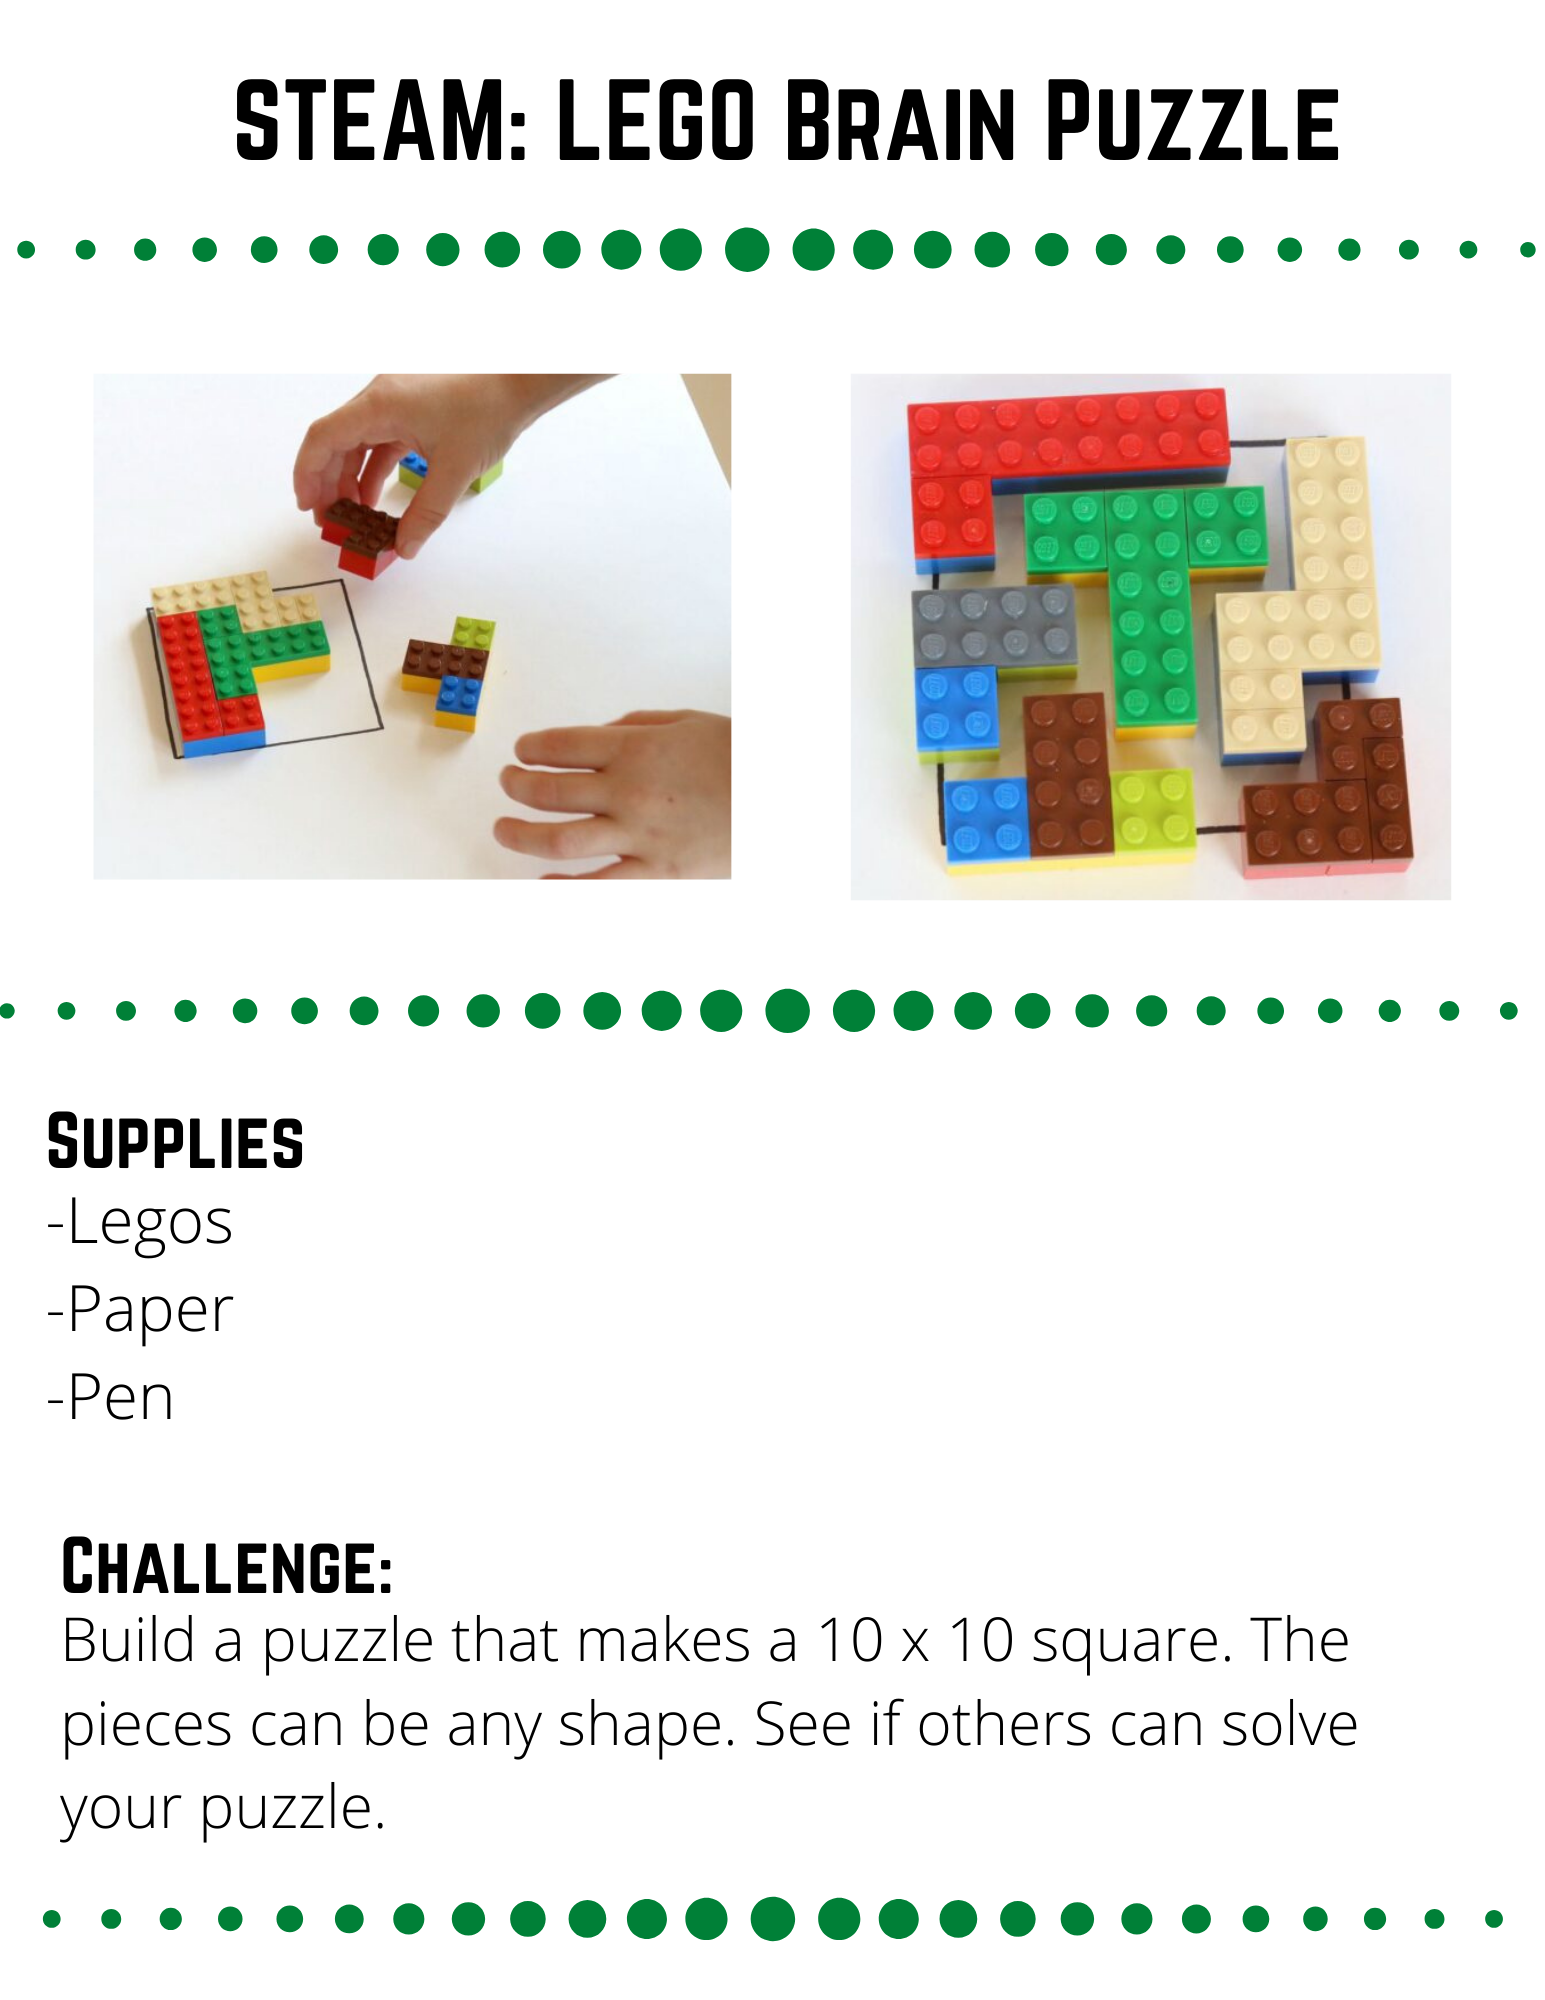 STEAM: LEGO Brain Puzzle Supplies  -Legos -Paper -Pen  Challenge:  Build a puzzle that makes a 10 x 10 square. The pieces can be any shape. See if others can solve your puzzle.   Plan:  Think about how you want to design your puzzle.  Use a pencil and paper to draw out a 10 x 10  square and fill it with some possible designs. When planning your brain puzzle, keep in mind the limitations of the legos you have to use. Are there any other limitations you need to keep in mind?  Build:  When you have your design figured out, start building it with LEGOS.  The puzzle pieces are made out of basic bricks, with a layer of flat bricks on top to attach them.  You can make any shapes you like.  Make sure your shapes fit in the 10 x 10 square.  When your puzzle is completed.  Mix up the pieces and see if a parent, sibling, or friend can solve your puzzle.  It will help them if you draw a 10 x 10 square on paper for them so they know the shape they are trying to make with your pieces.  Reflect  How quickly did somebody solve your puzzle?  What could you do to make it more difficult?  Does your puzzle have more than one solution?    Repeat  Can you design a puzzle that is more difficult than your first one?  Time the person who is solving your puzzle and see if they beat your new puzzle faster or slower.    Are there different shapes you could build besides square puzzles?  If you do a different shape, make sure you draw an outline so that the person solving it knows what shape they are trying to make.  Source: https://frugalfun4boys.com/lego-brain-puzzles/